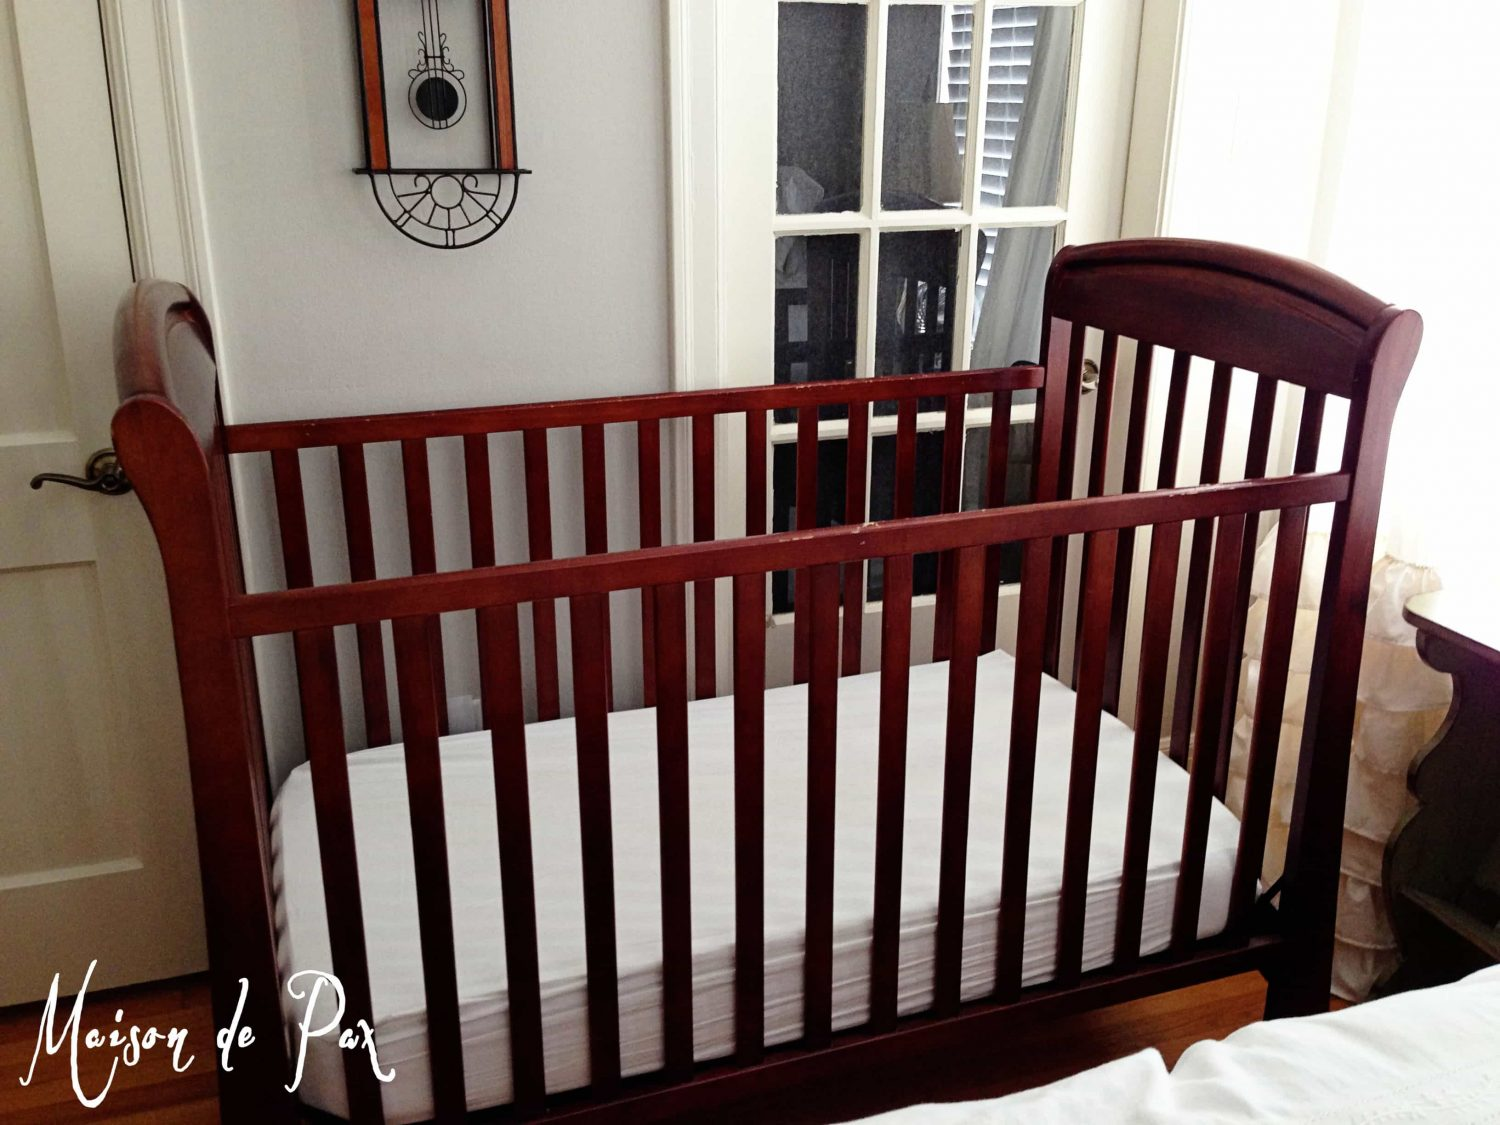 before picture of a crib- Maison de Pax